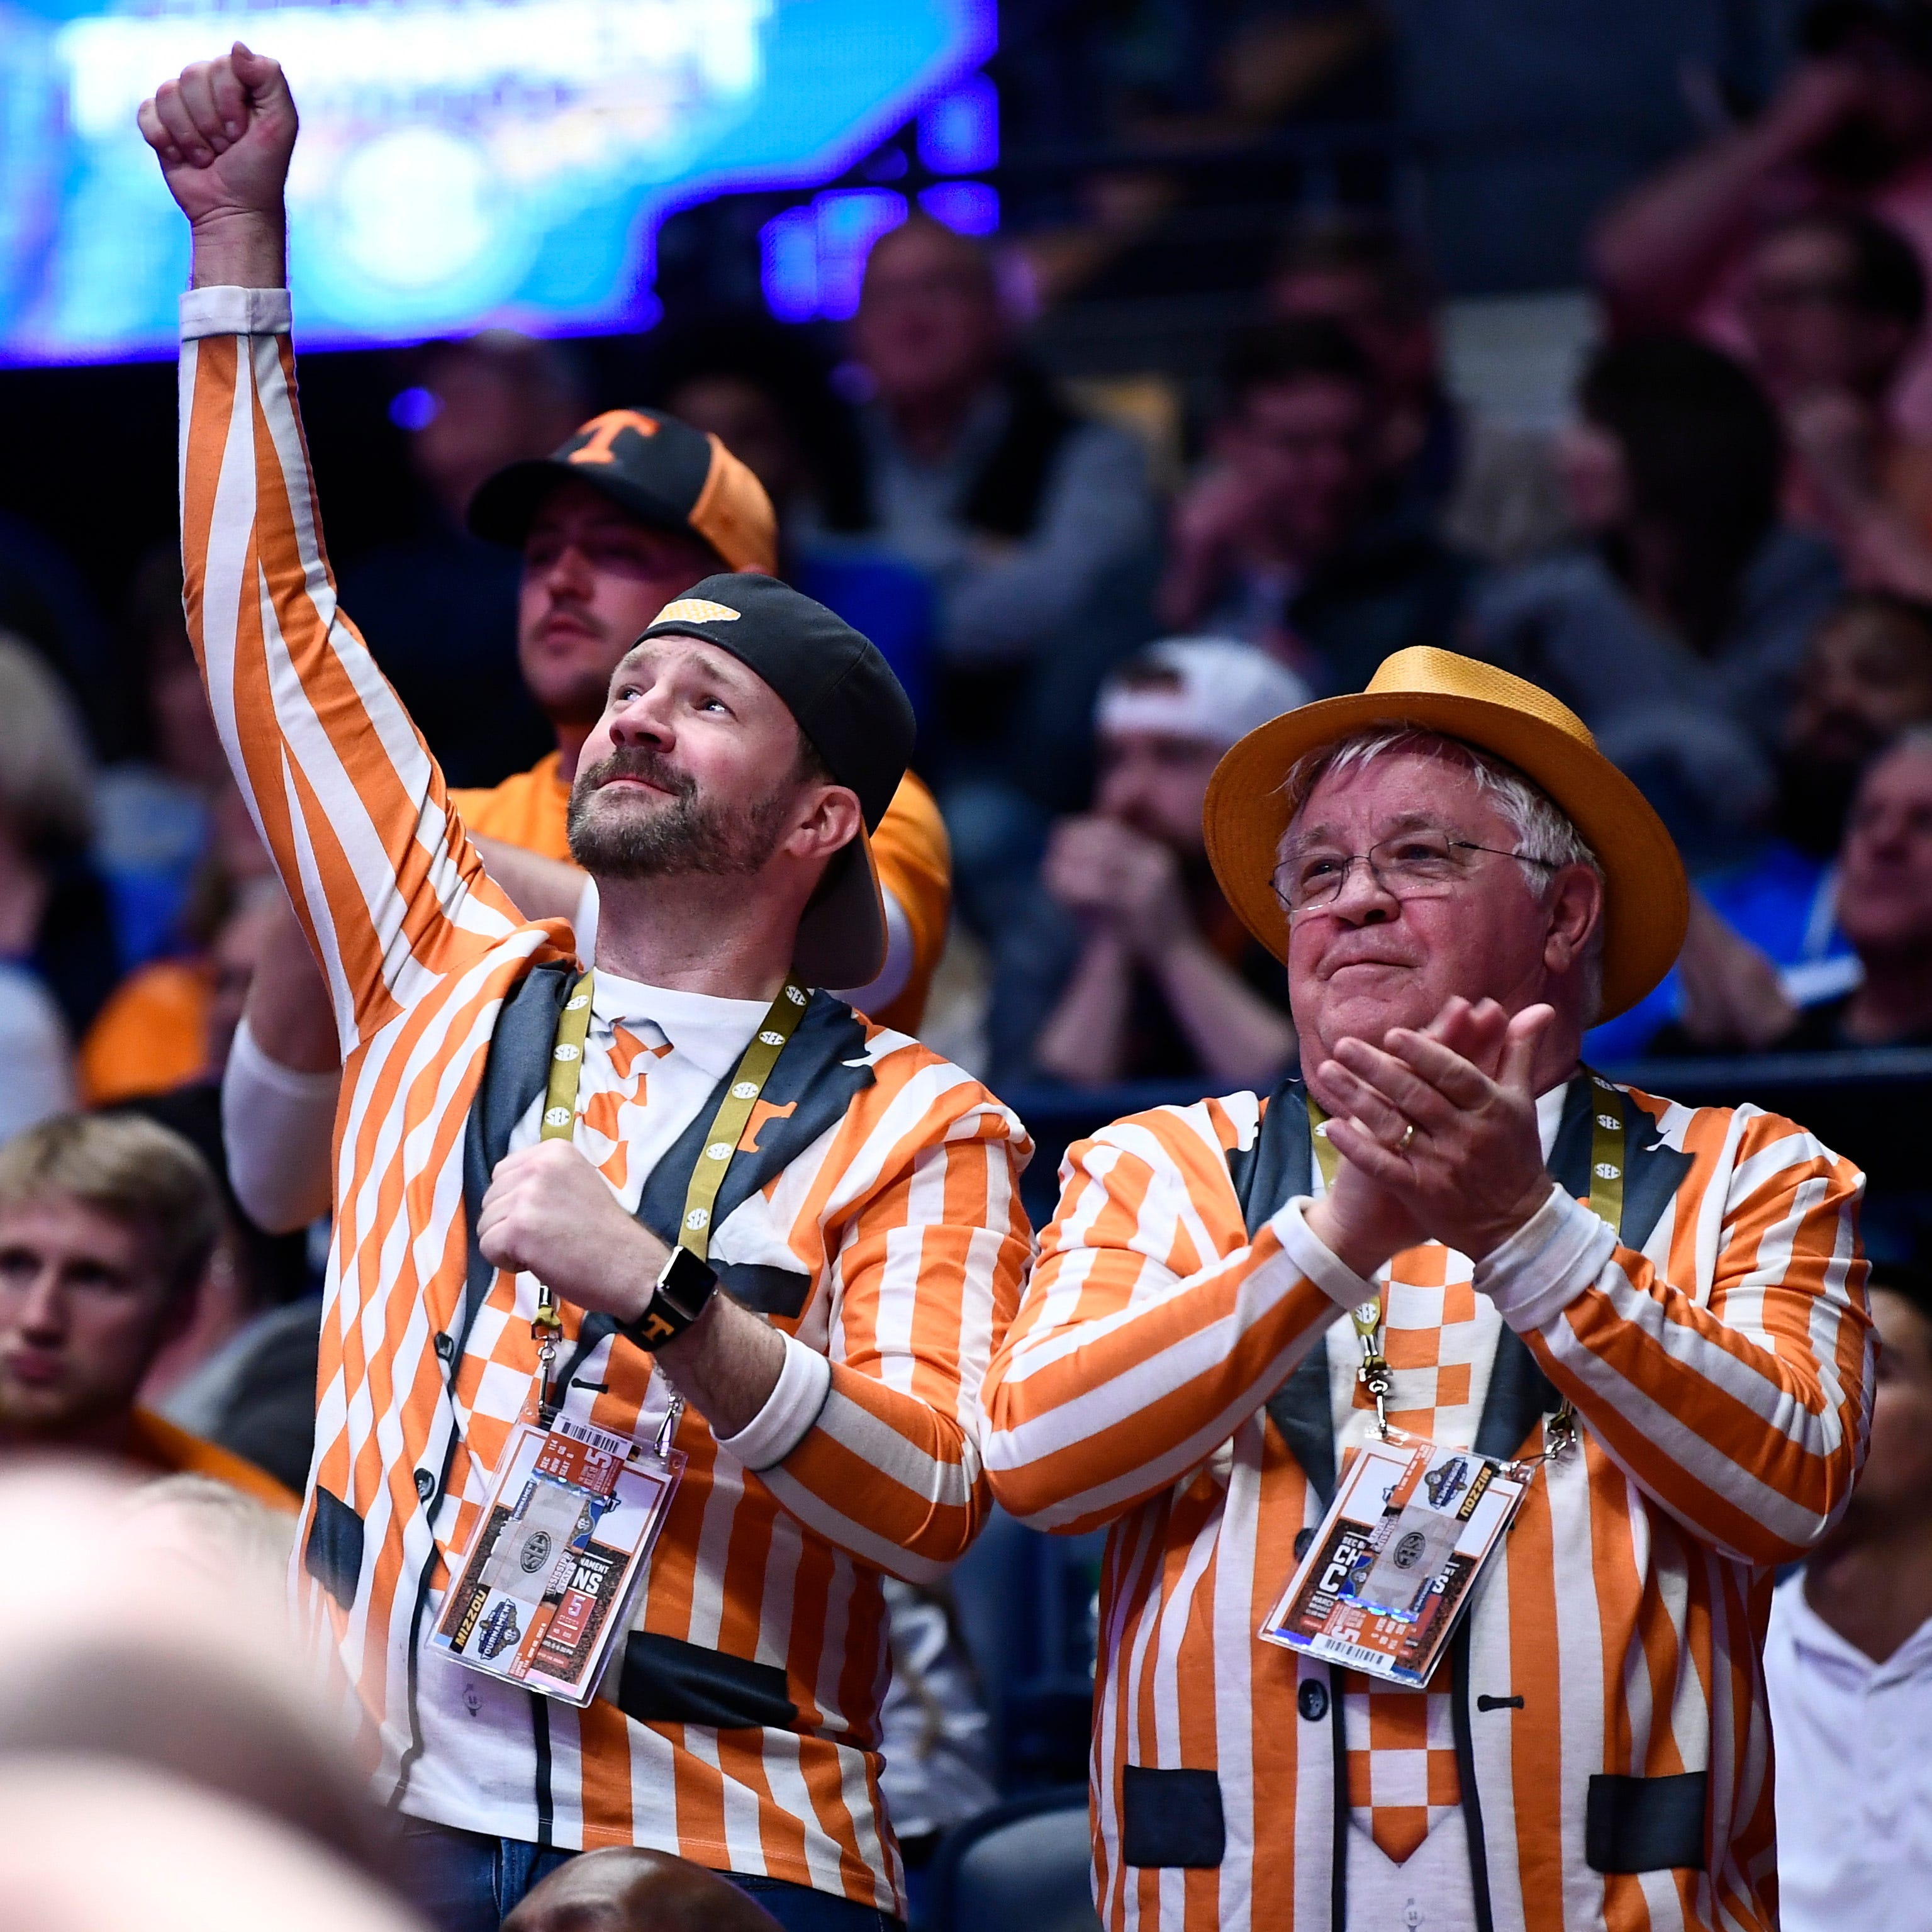 SEC Tournament tickets to Tennessee vs Auburn championship game from $161 to $3,944